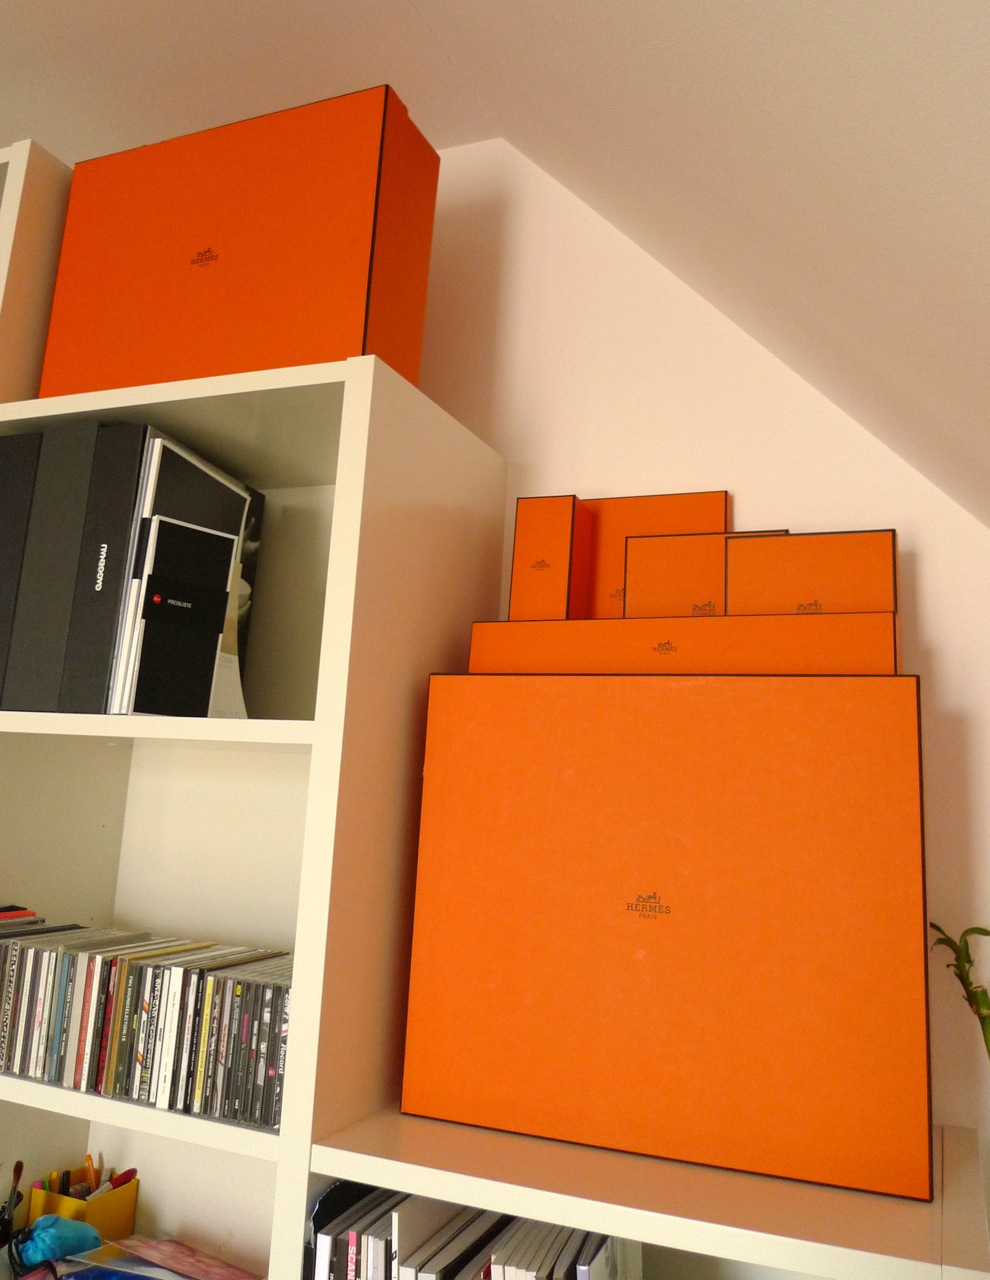 when deciding your home interior design space layout consider all the